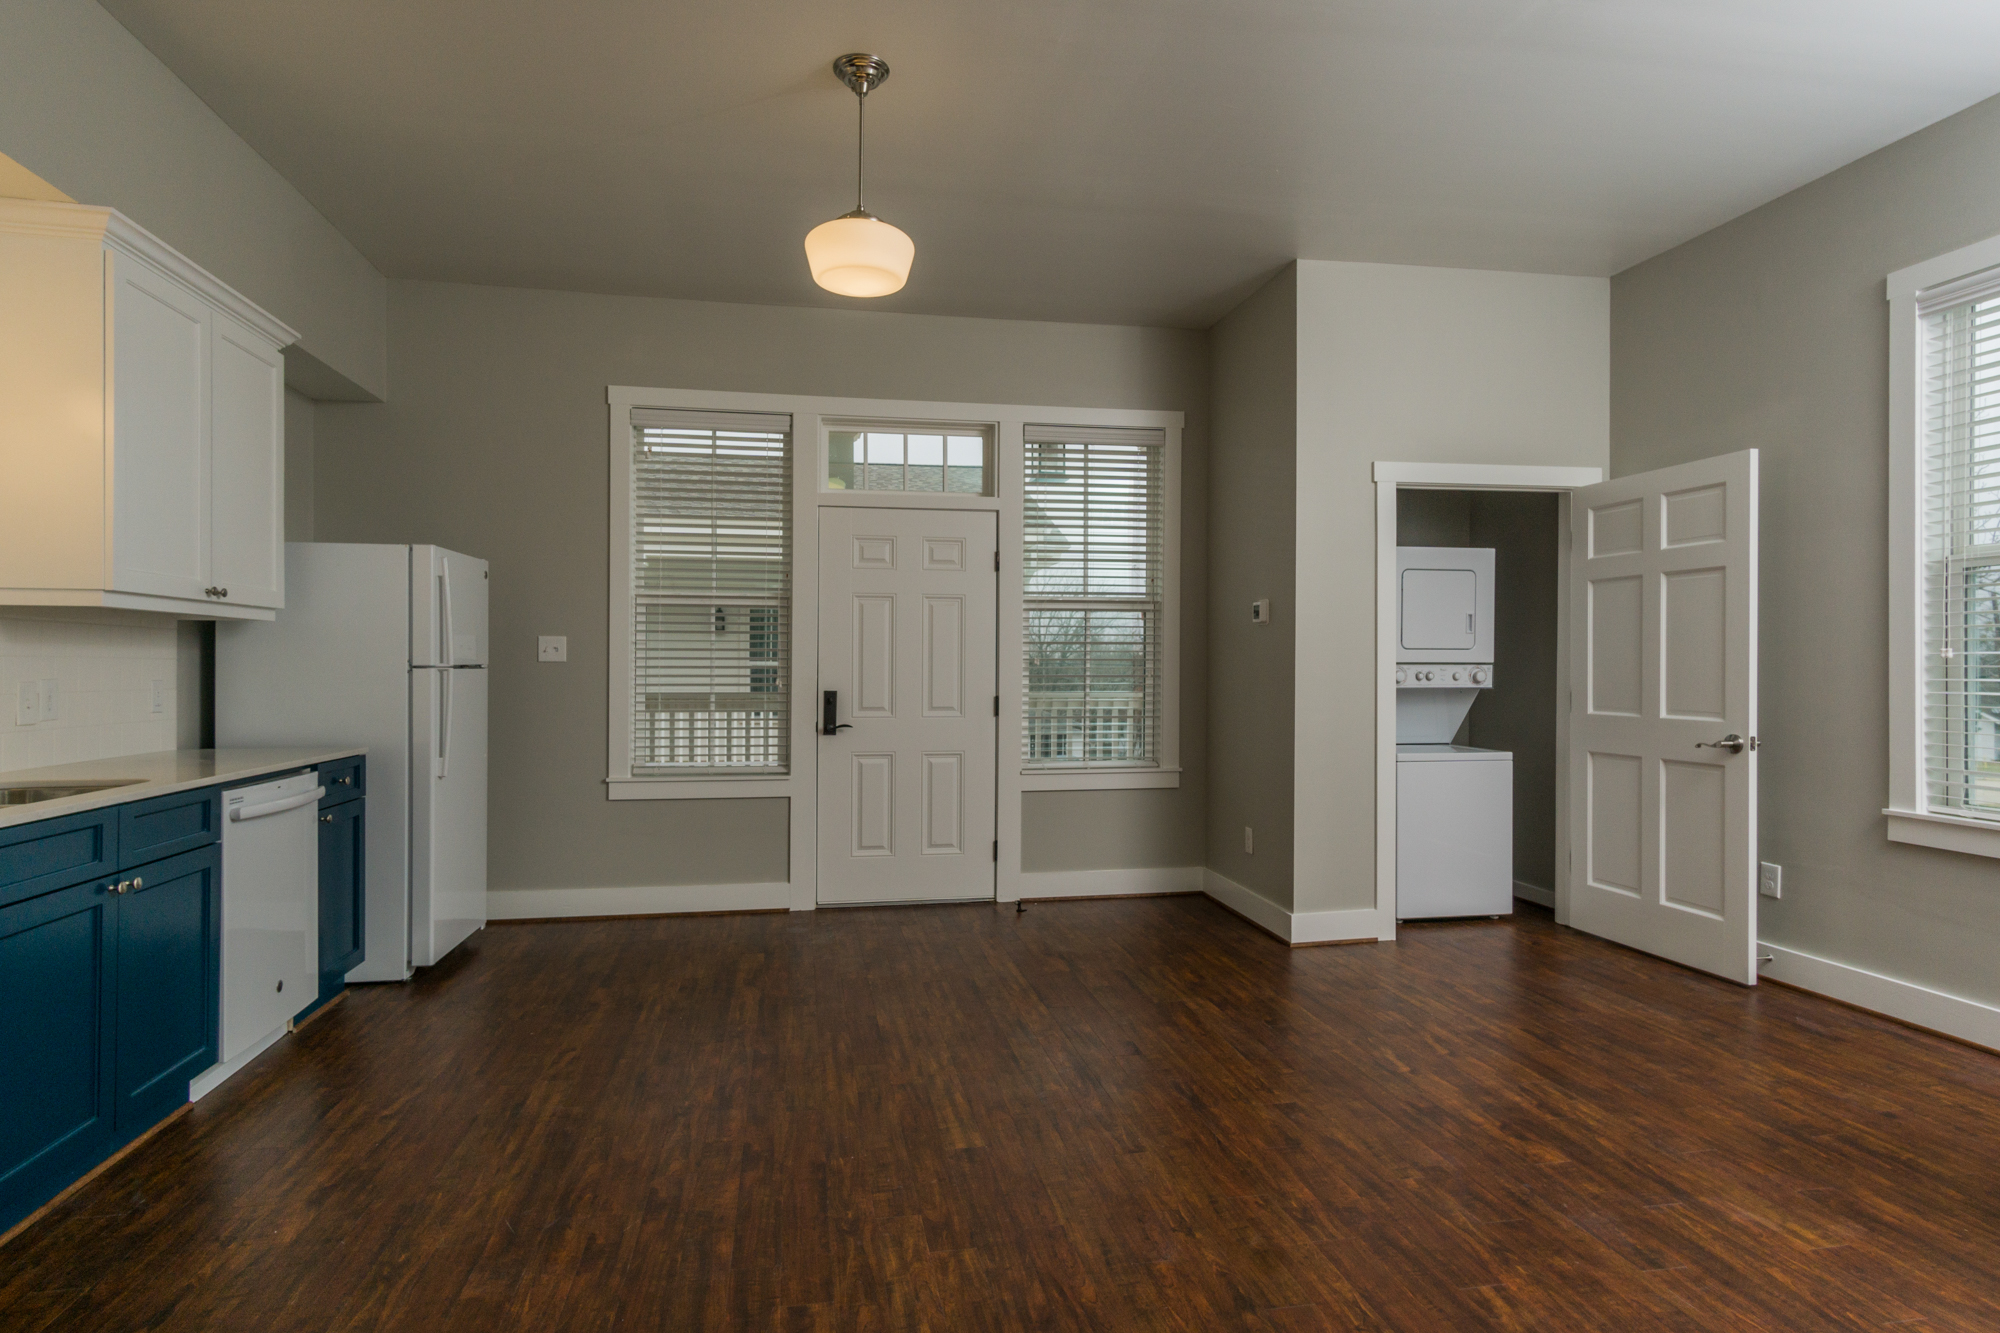 06 living room and laundry.jpg